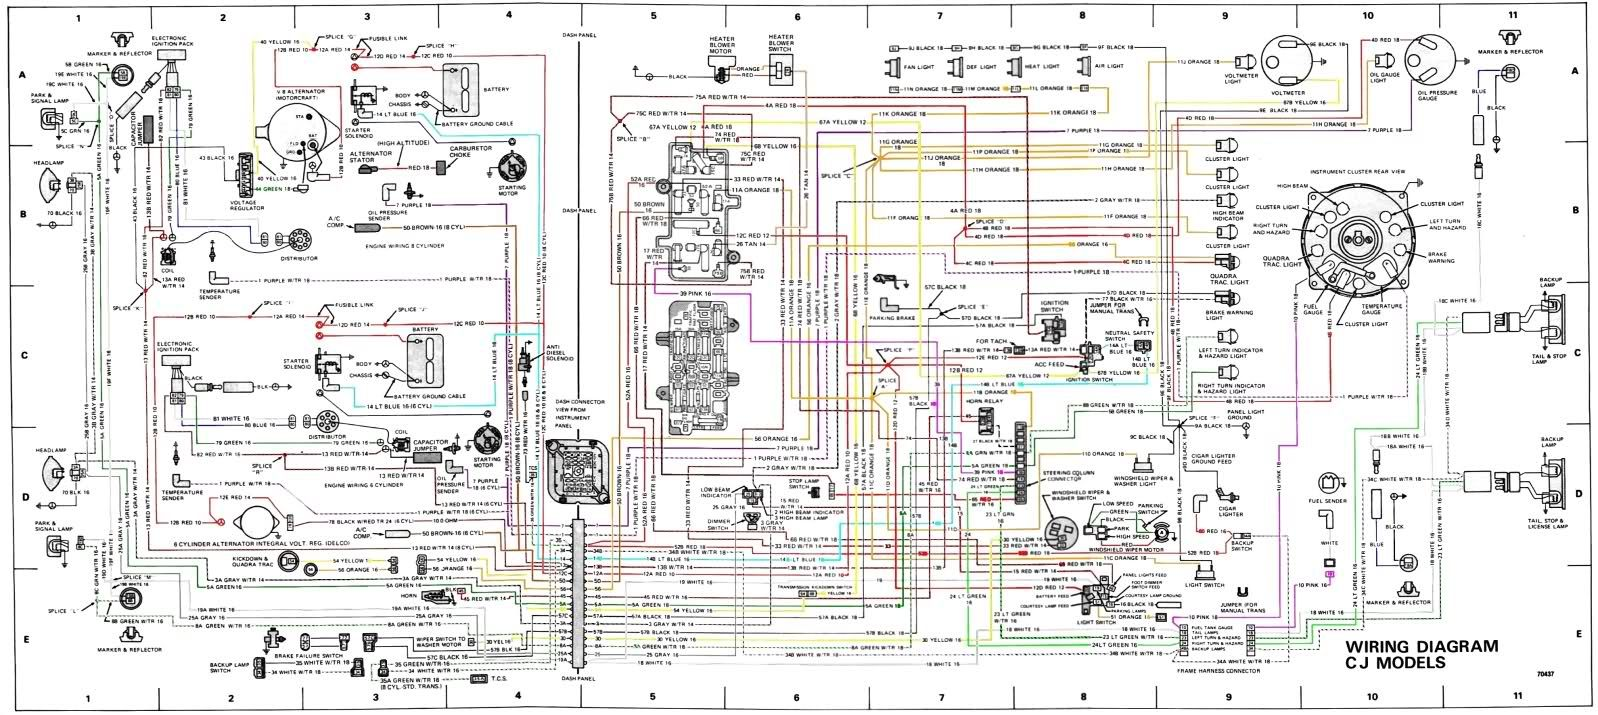 Jeep Cj7 Wiring Diagram - Wiring Diagram Server thick-speed -  thick-speed.ristoranteitredenari.it | 1980 Cj7 Wiring Schematic |  | Ristorante I Tre Denari Manerbio